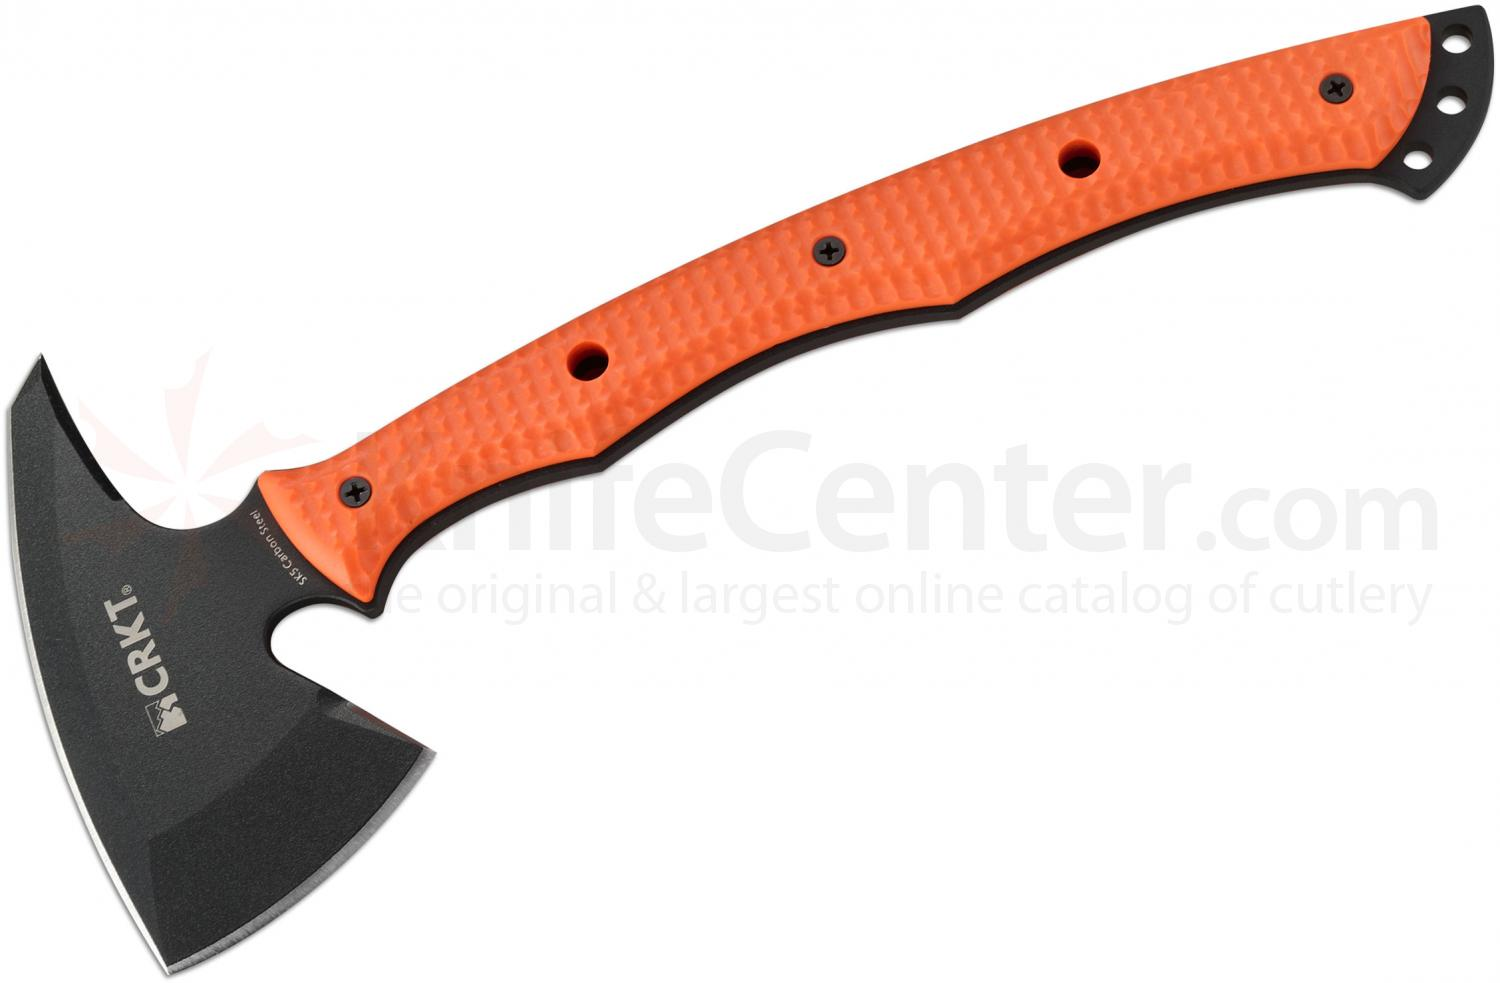 Columbia River 2725ER Kangee Emergency Rescue T-Hawk Tomahawk with Spike, 13.75 inch Overall, Kydex Sheath